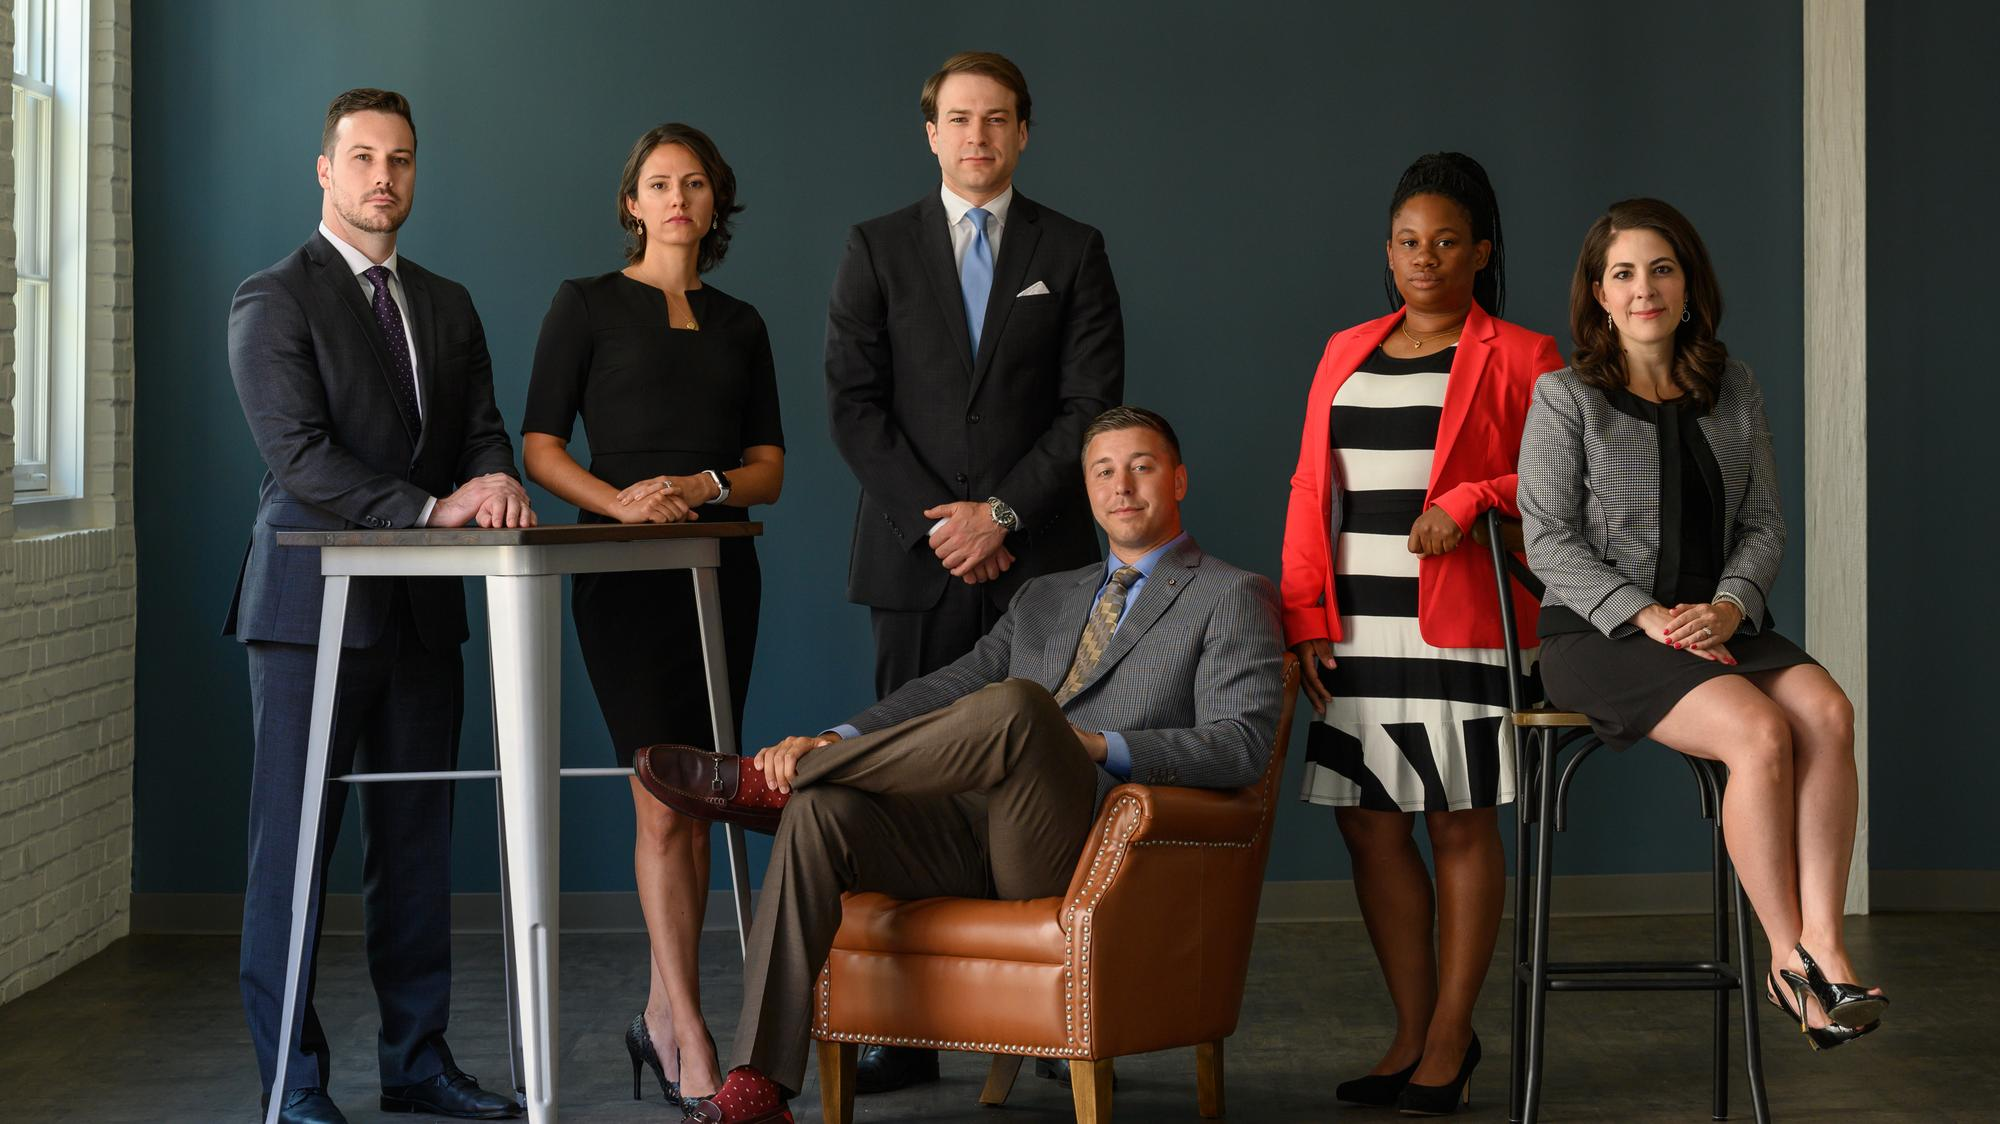 The 2019 Legal Elite Rising Stars